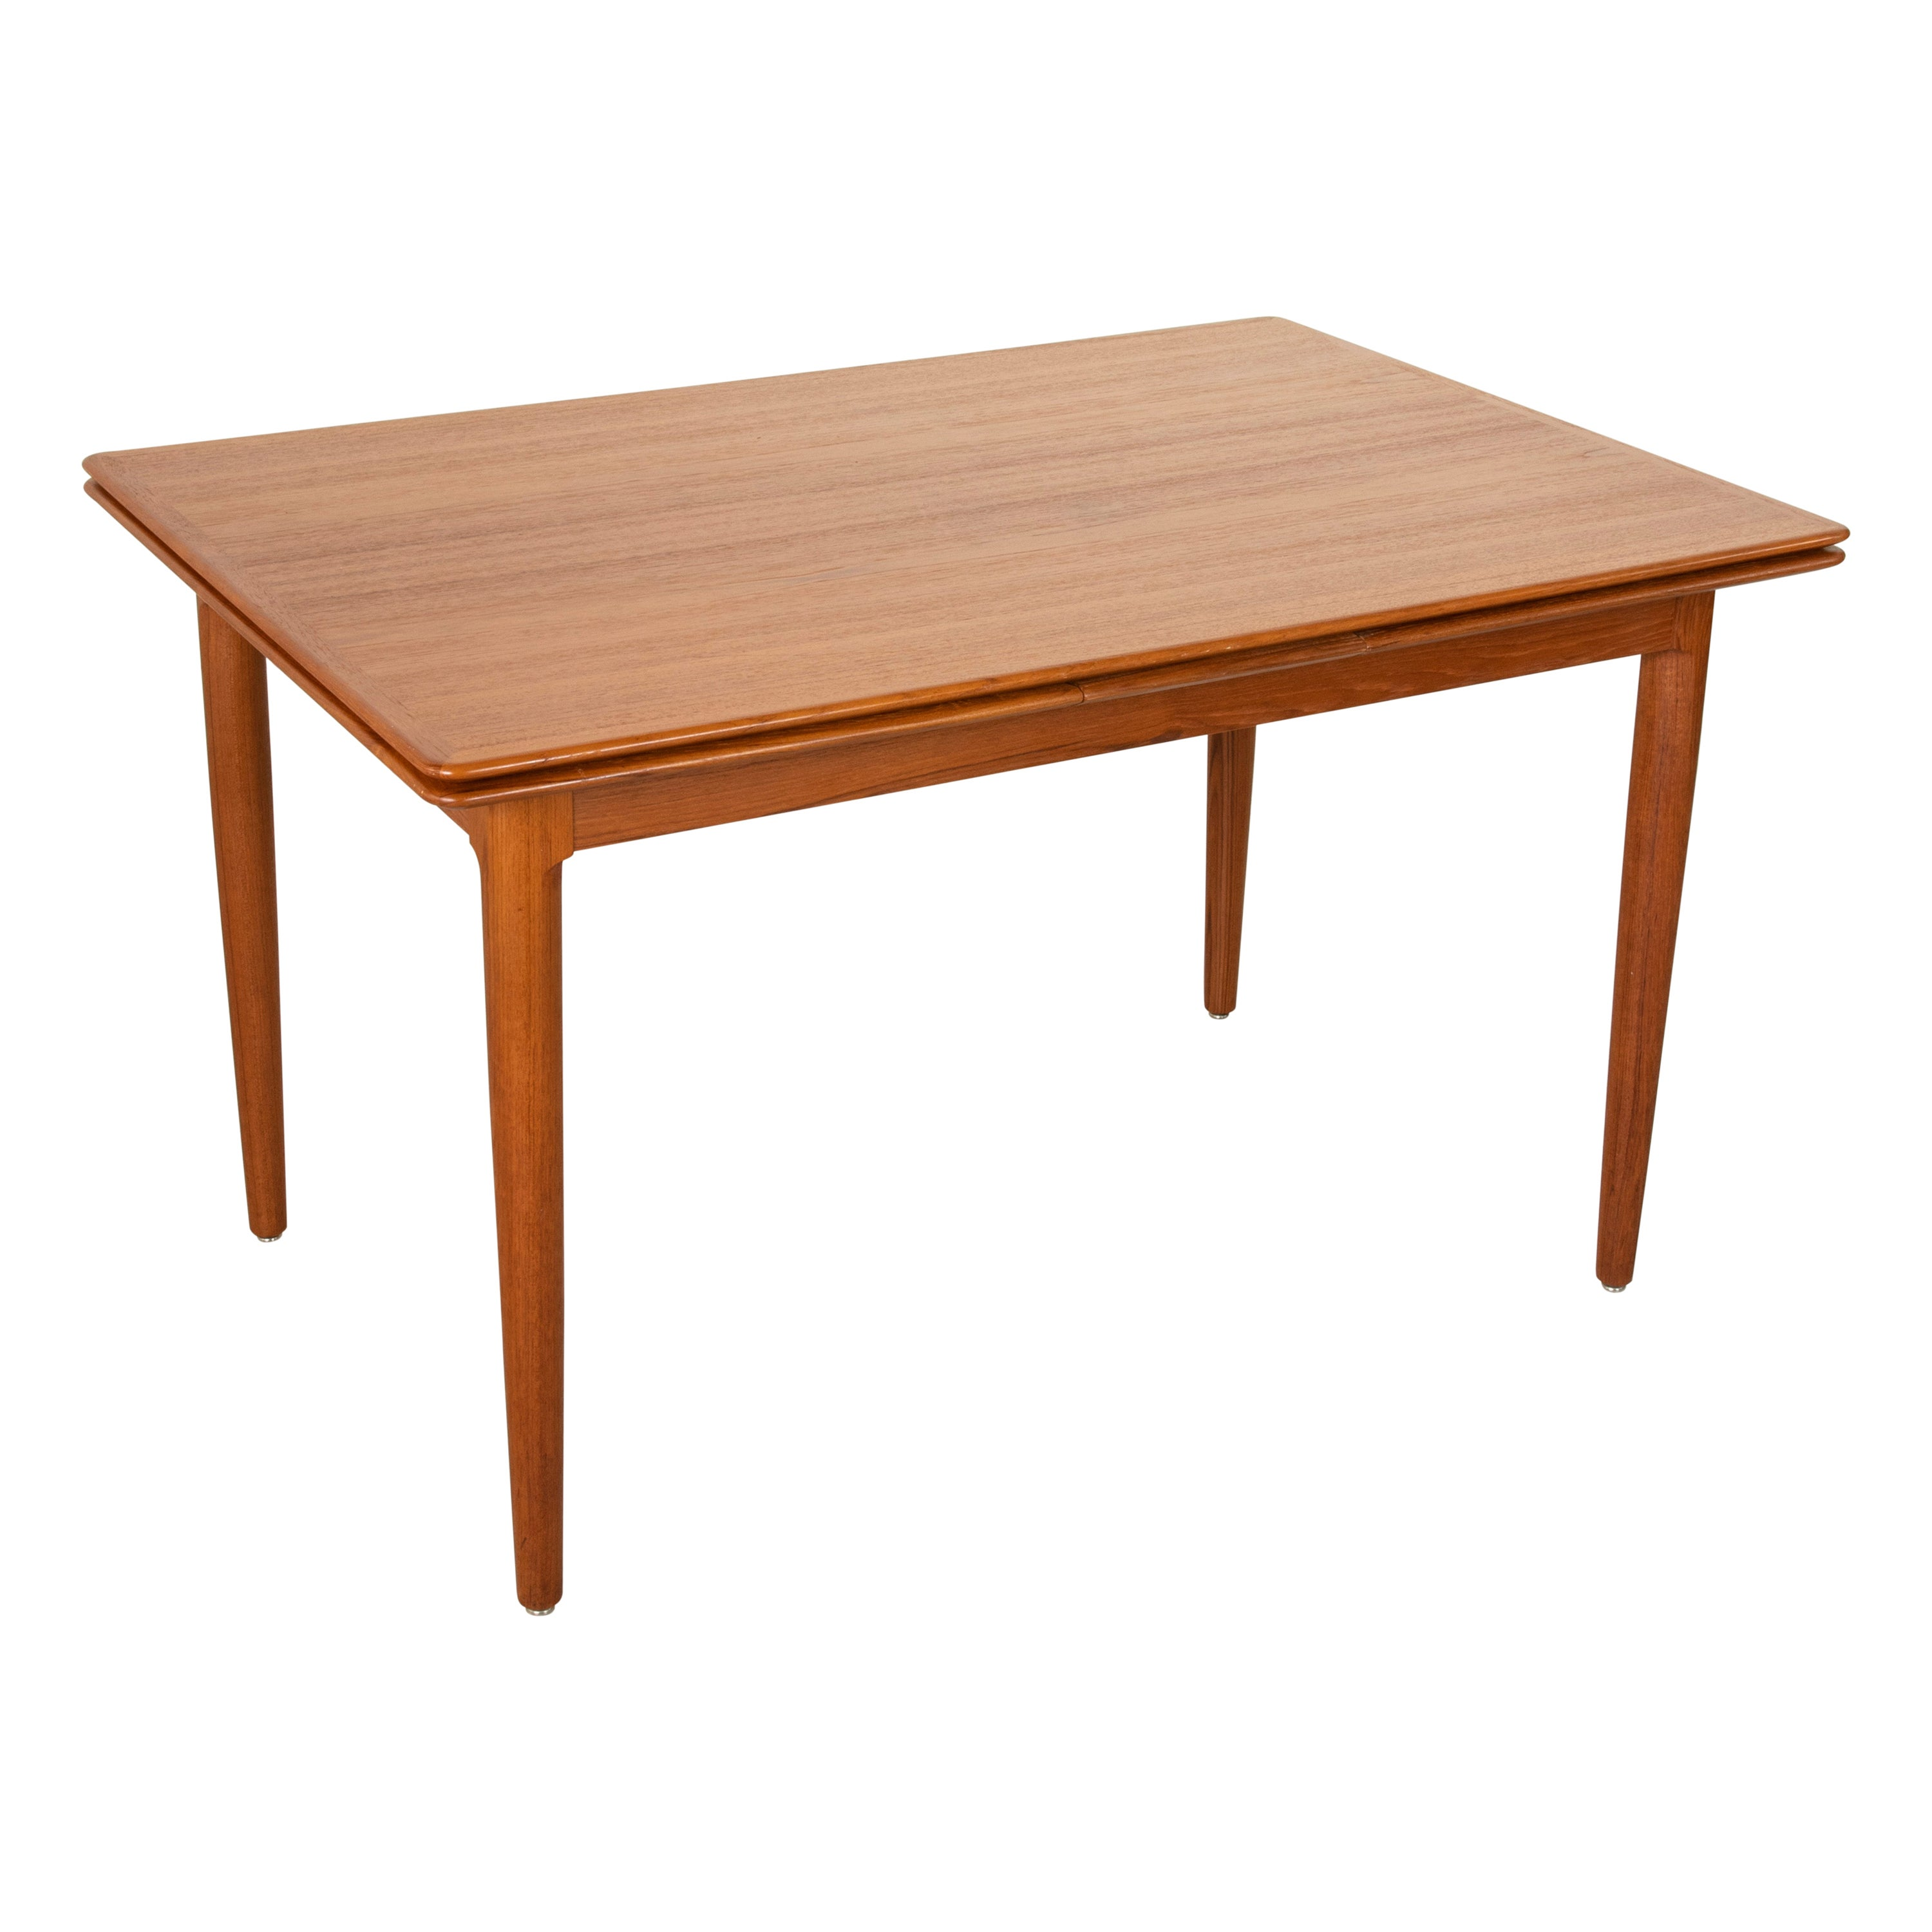 Midcentury Danish Modern Teak Dining Table with Draw Leaves